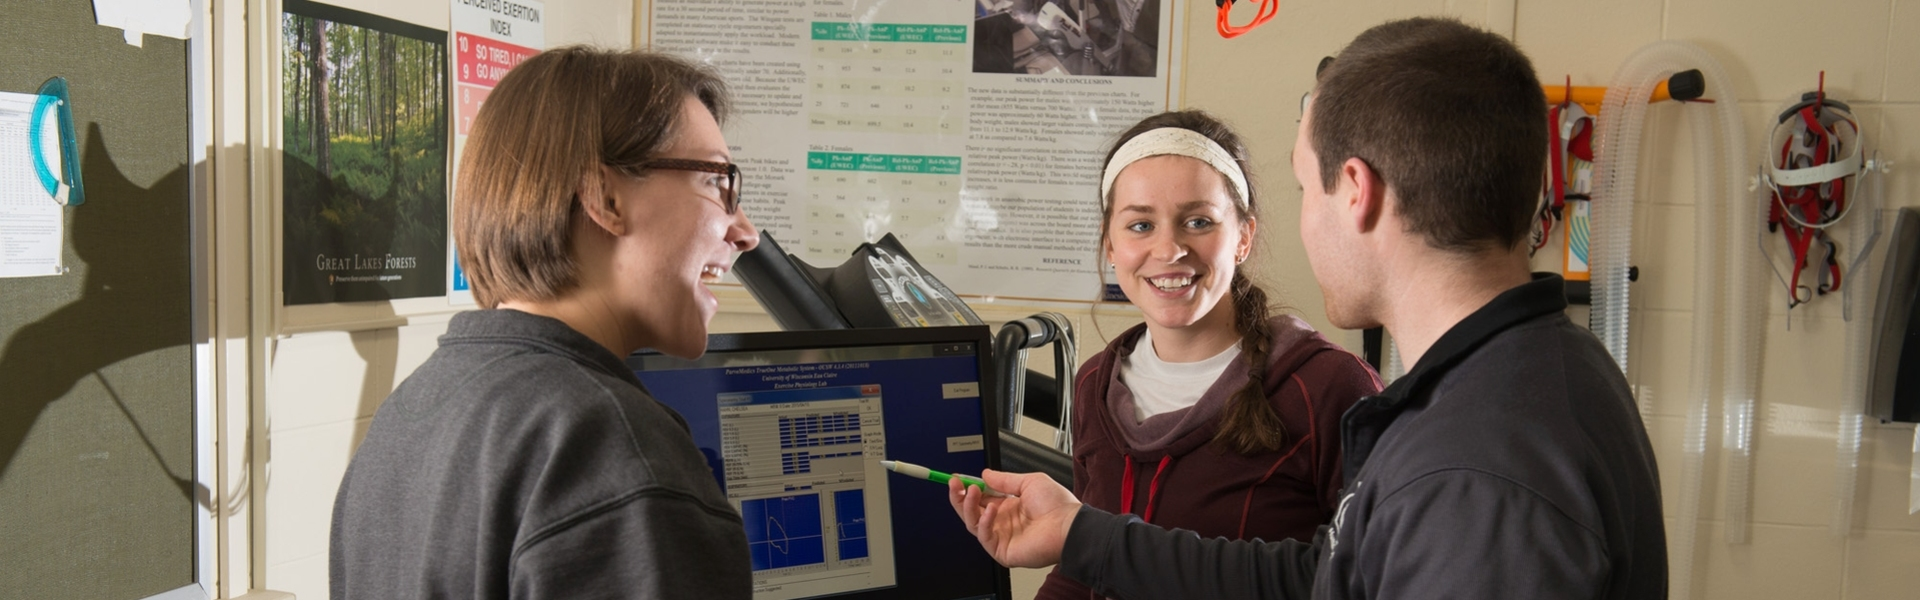 UWEC students performing kinesiology research